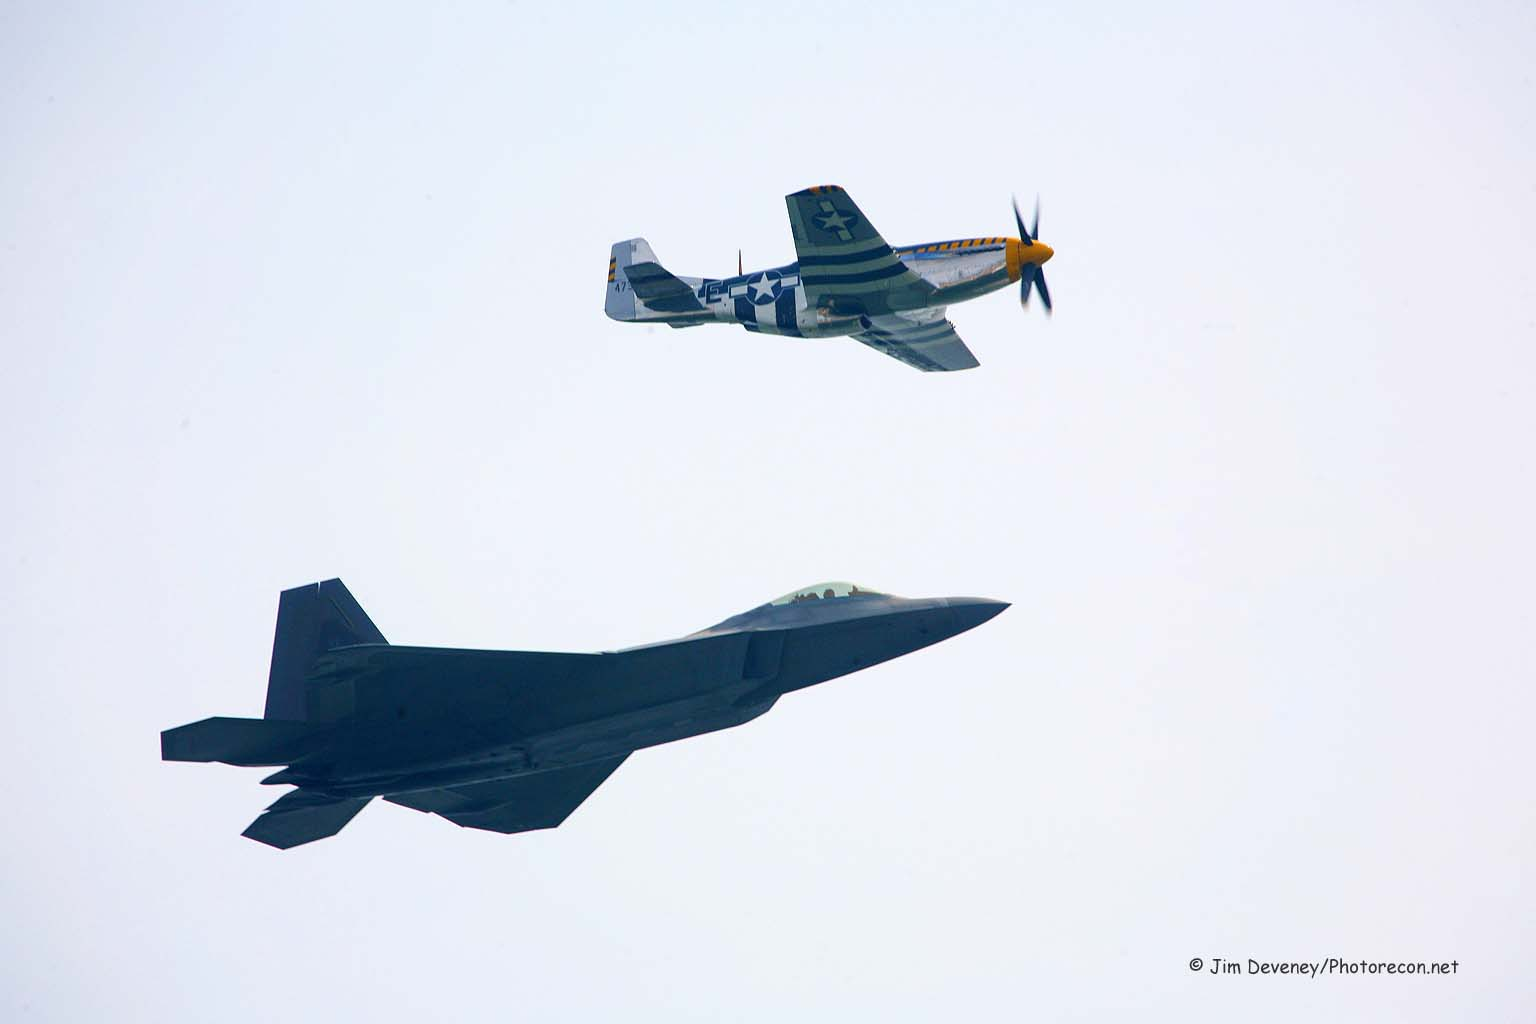 p-51 f-22 heritage flight